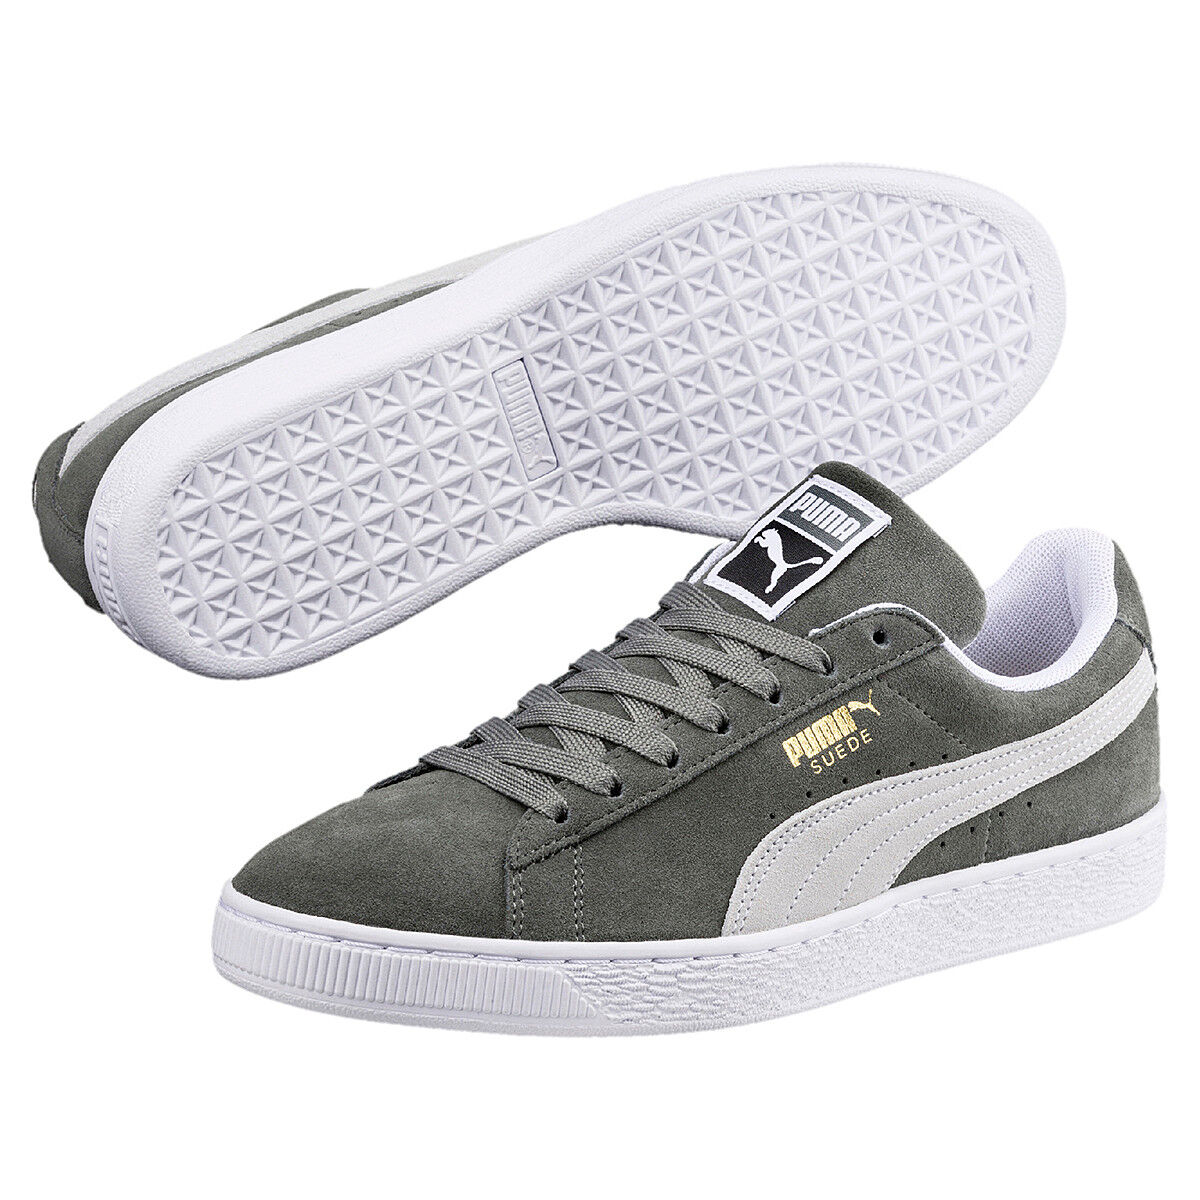 Puma ante Classic Zapatillas Unisex Low-Top gris 365347 05